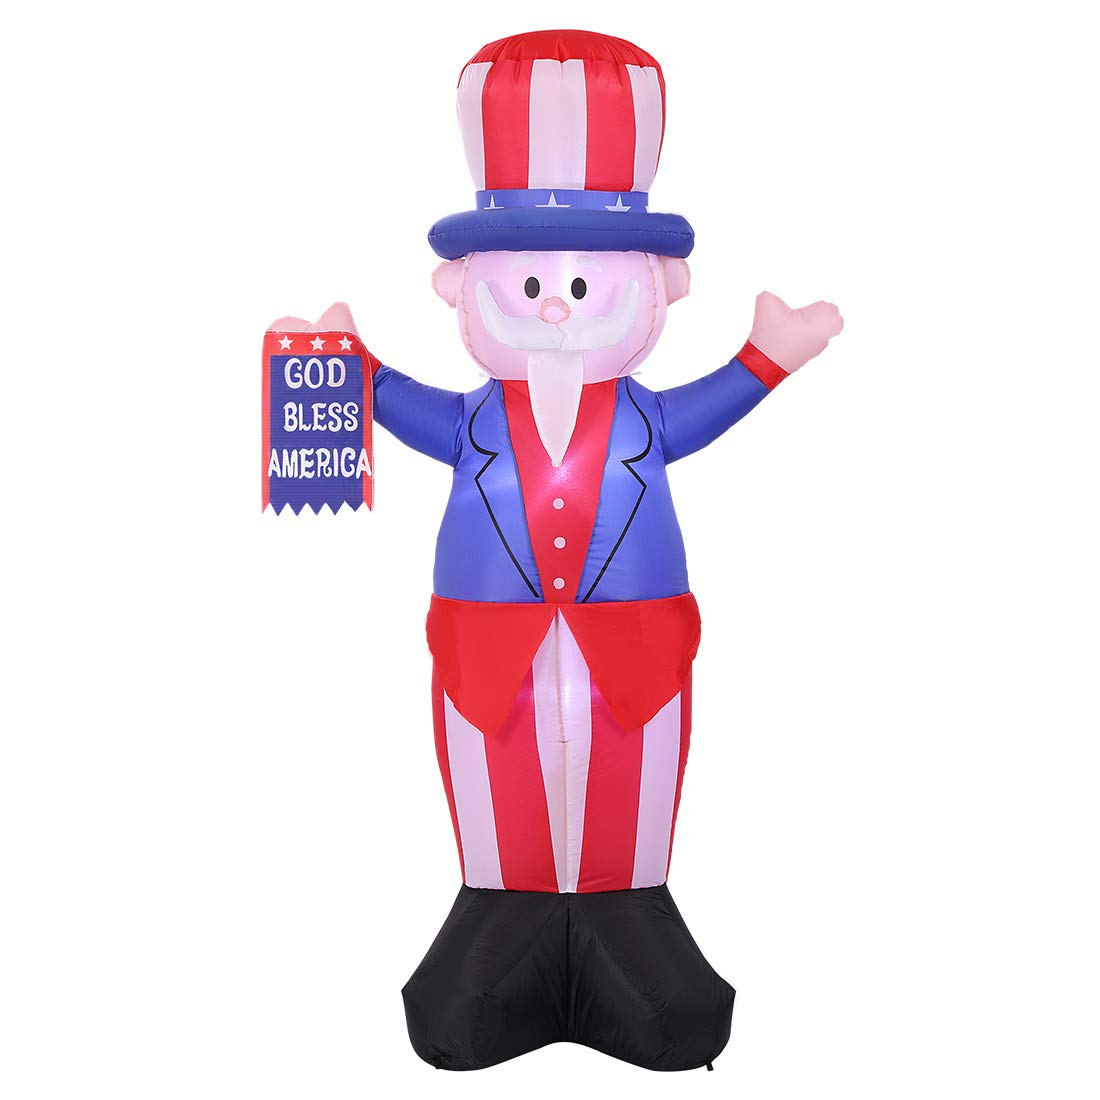 VIVOHOME 6ft Height Patriotic 4th of July Inflatable LED Lighted Uncle Sam with God Bless America Flag Outdoor Yard Decoration